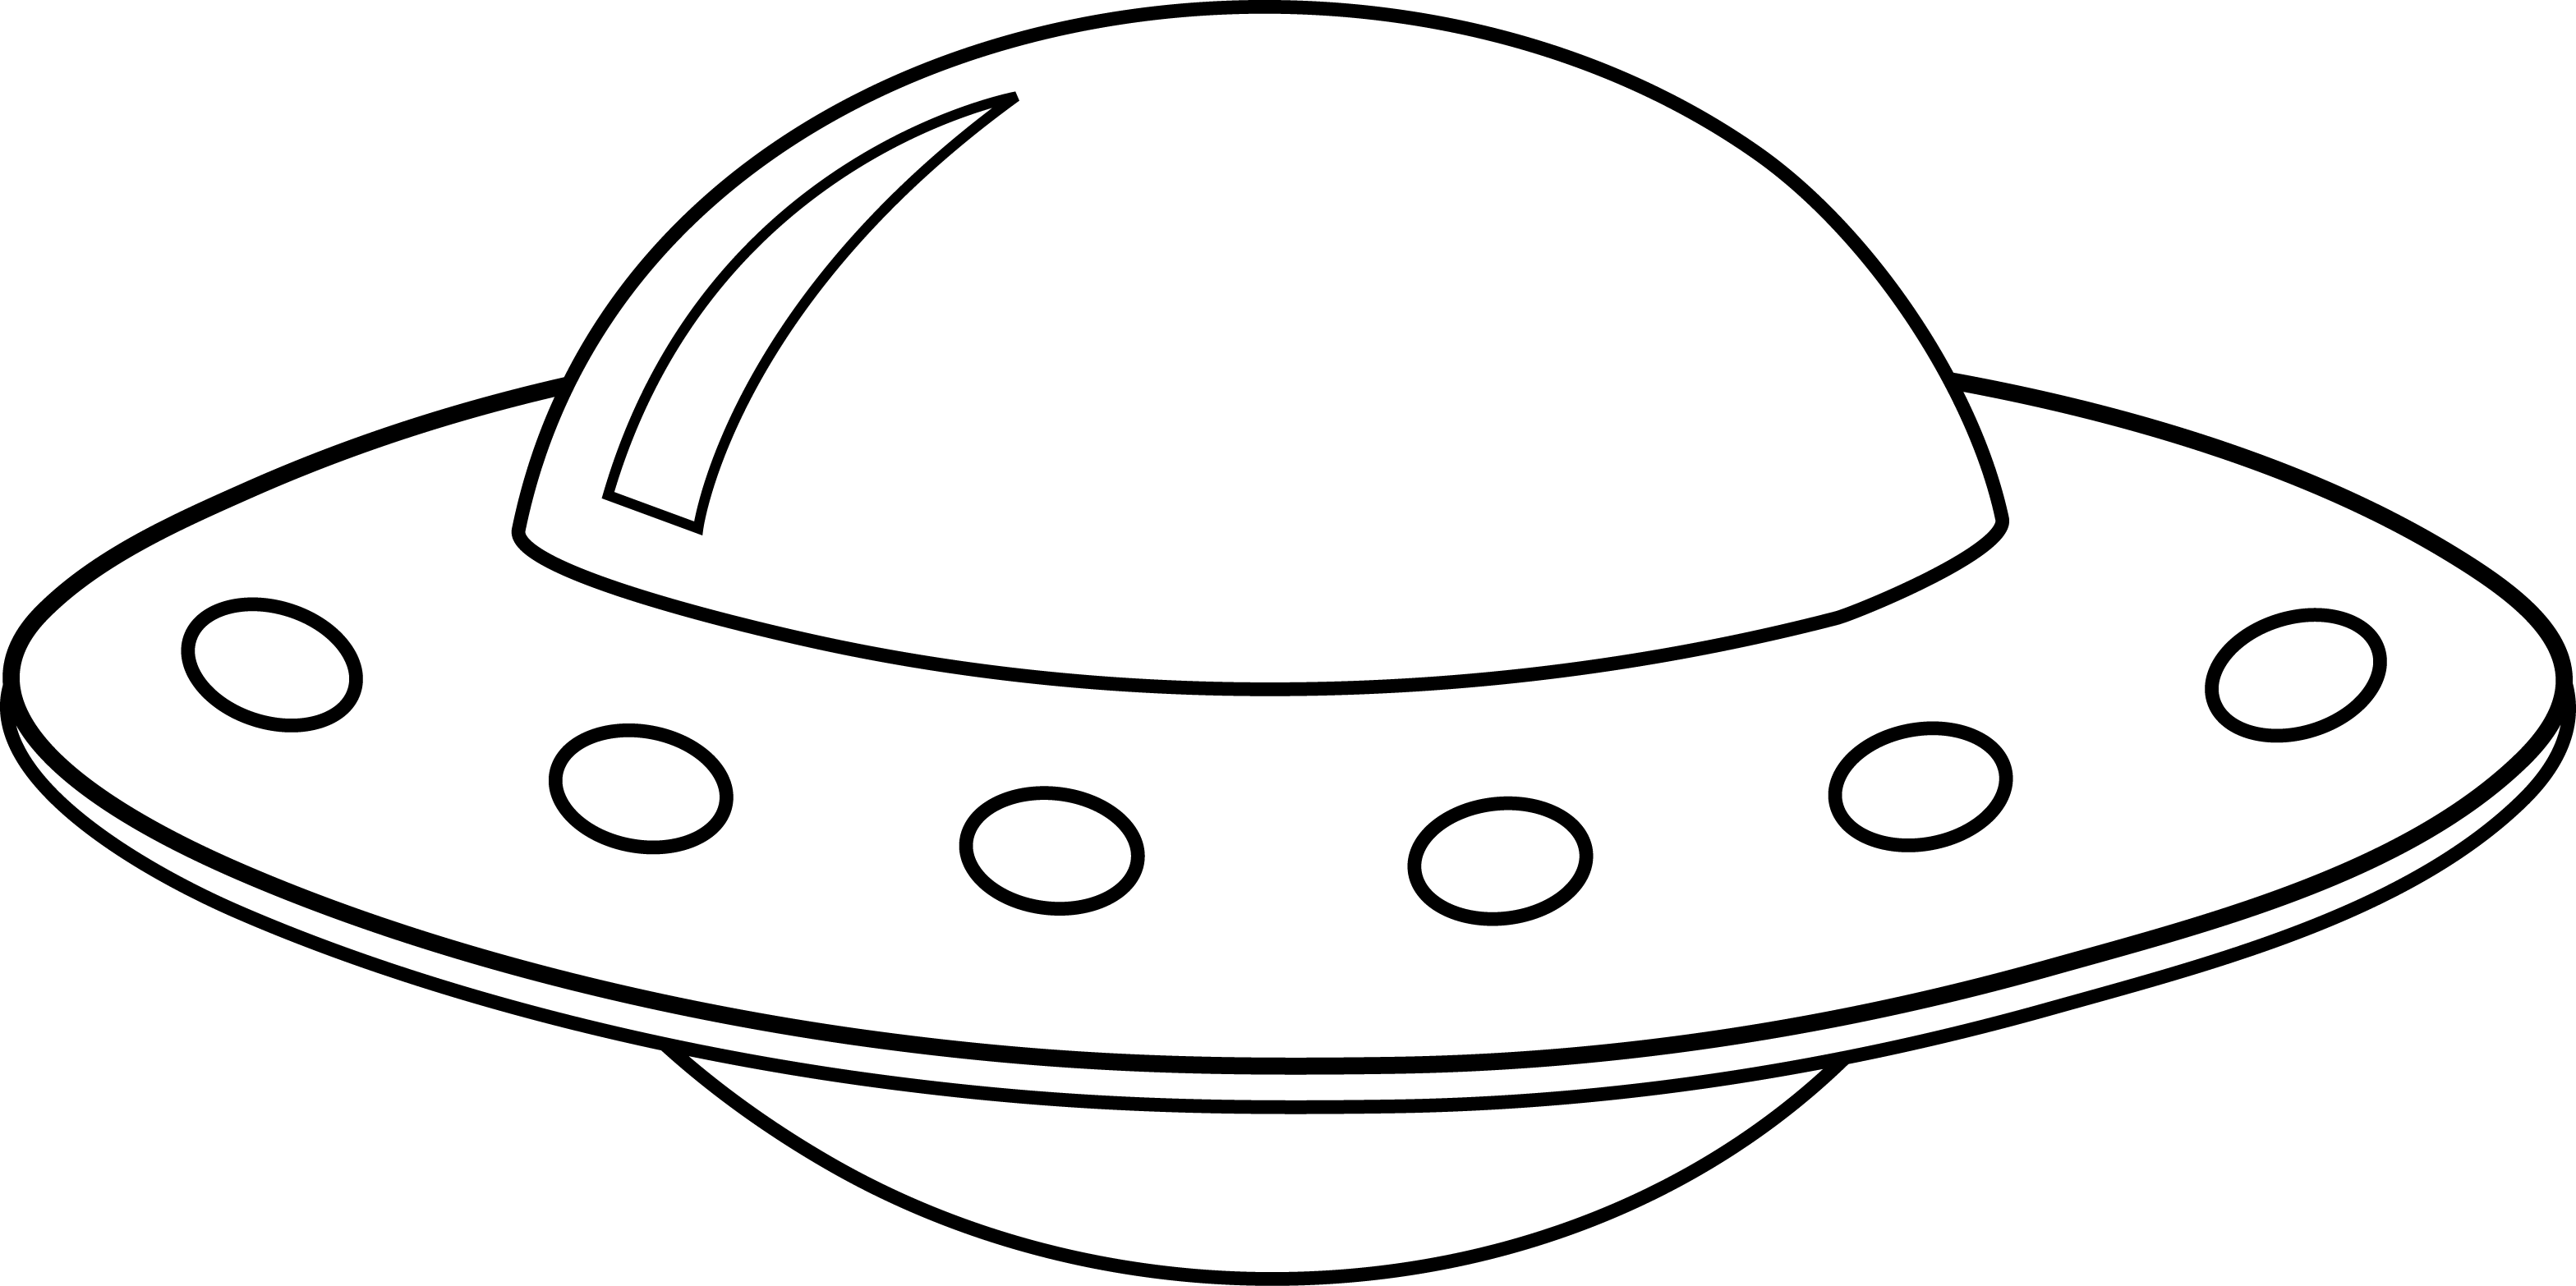 pin Drawn ufo spaceship #2 - Ufo PNG Black And White